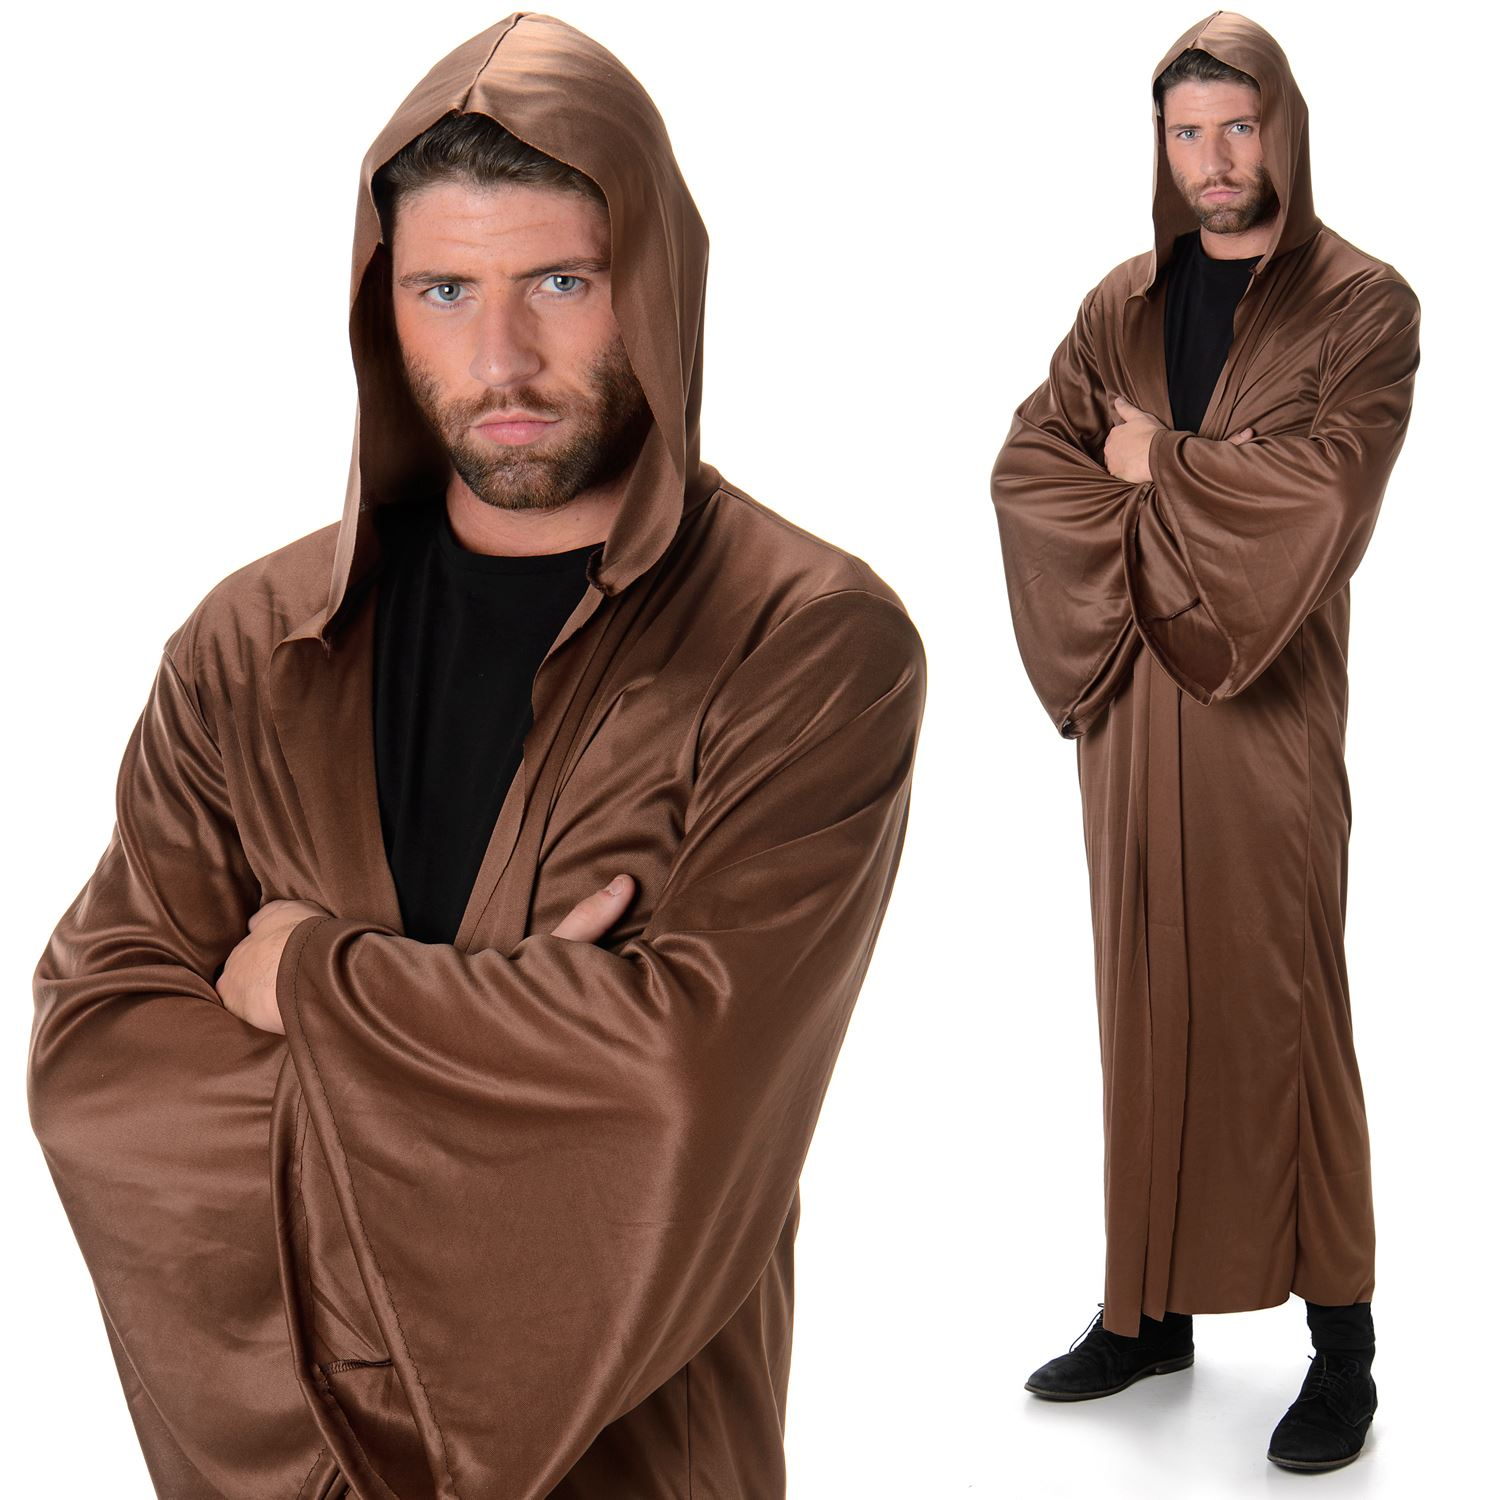 e070d1d06f Adult Brown Hooded Robe Fancy Dress Costume Medieval Cloak Mens Outfit